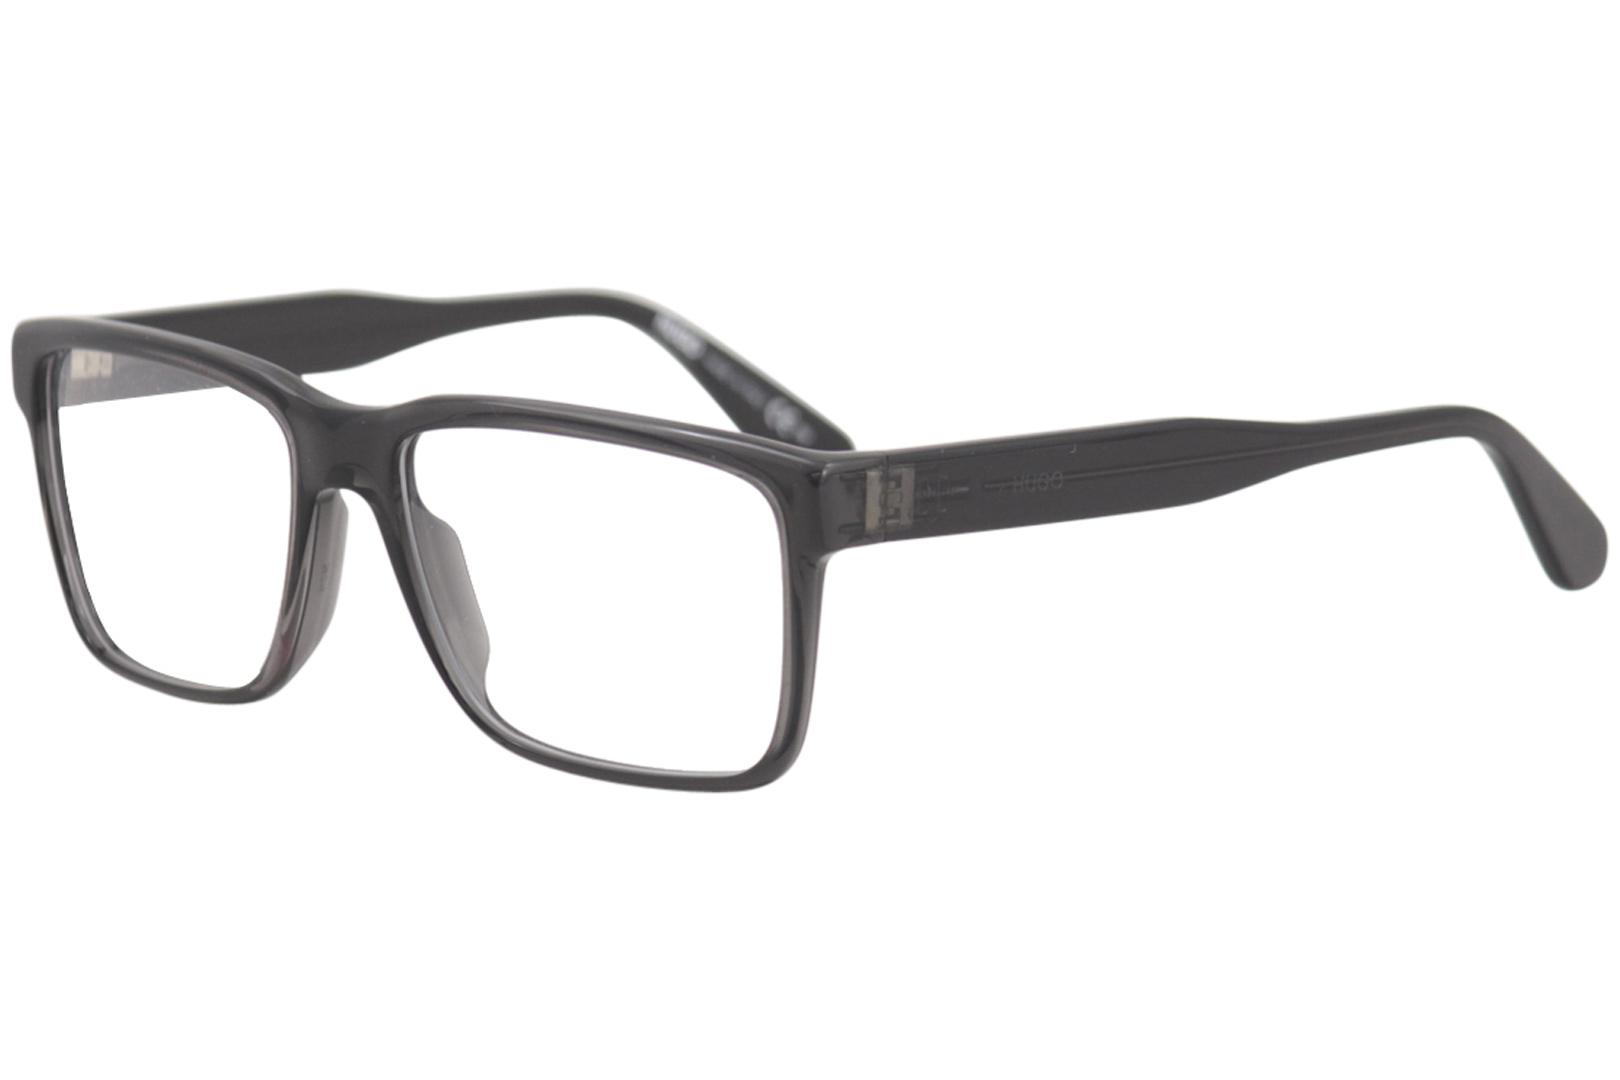 Hugo Boss Men's 0126 Full Rim Optical Frame